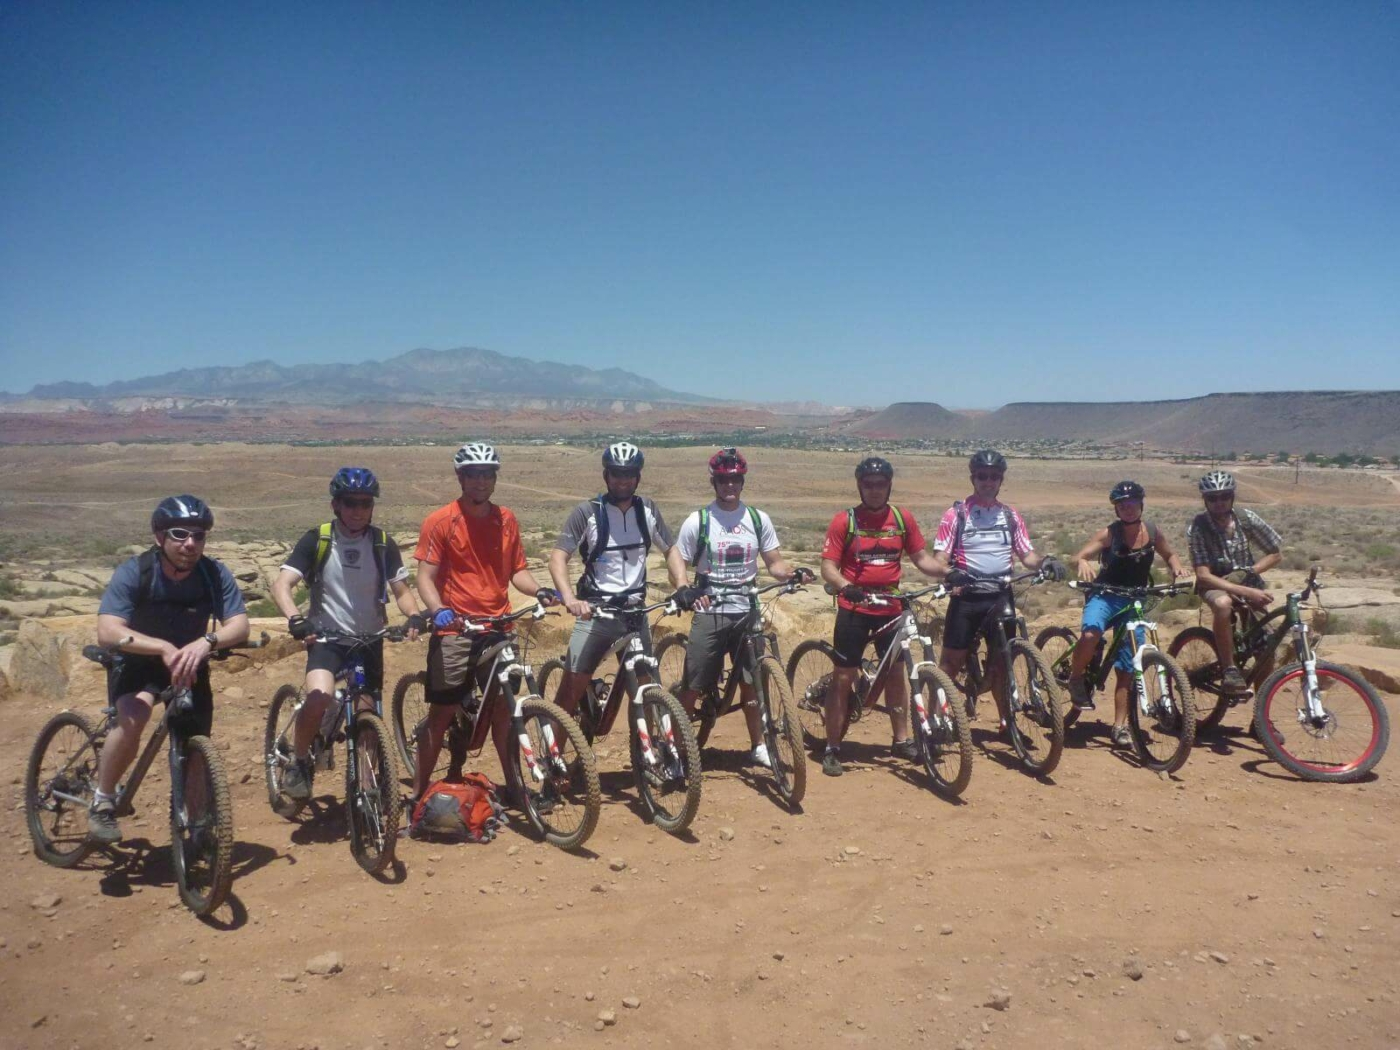 9 people lined up side-by-side sitting on their mountain bikes in rock desert landscape